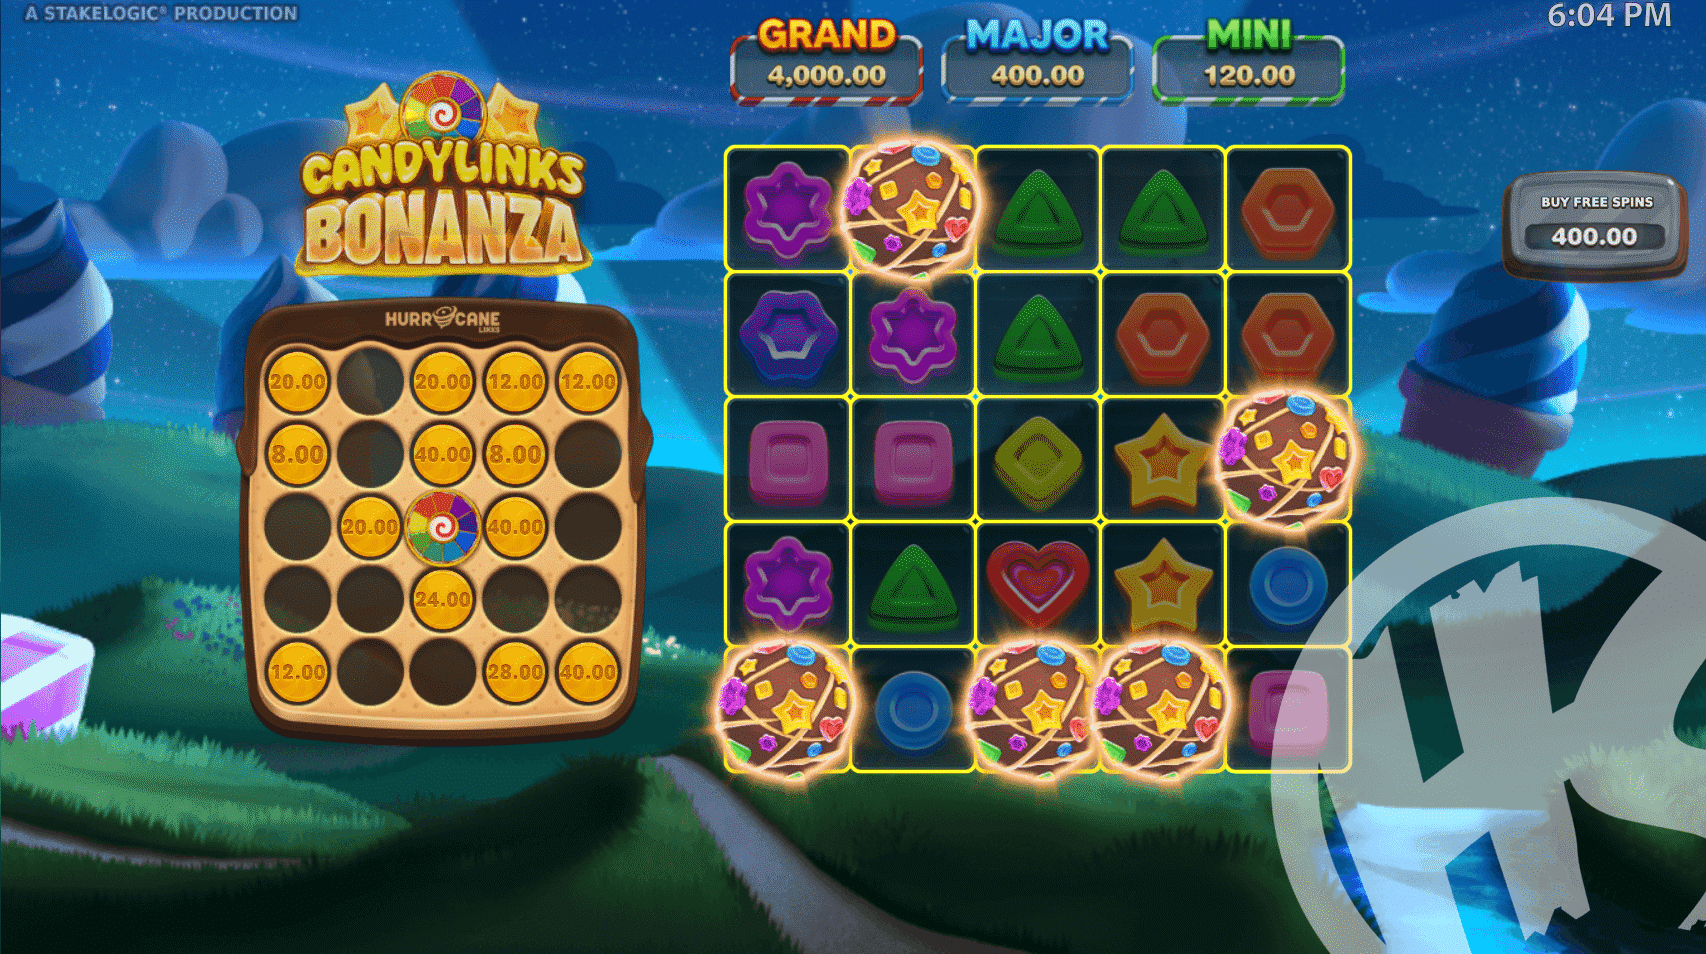 3 or More Scatters Triggers Free Spins